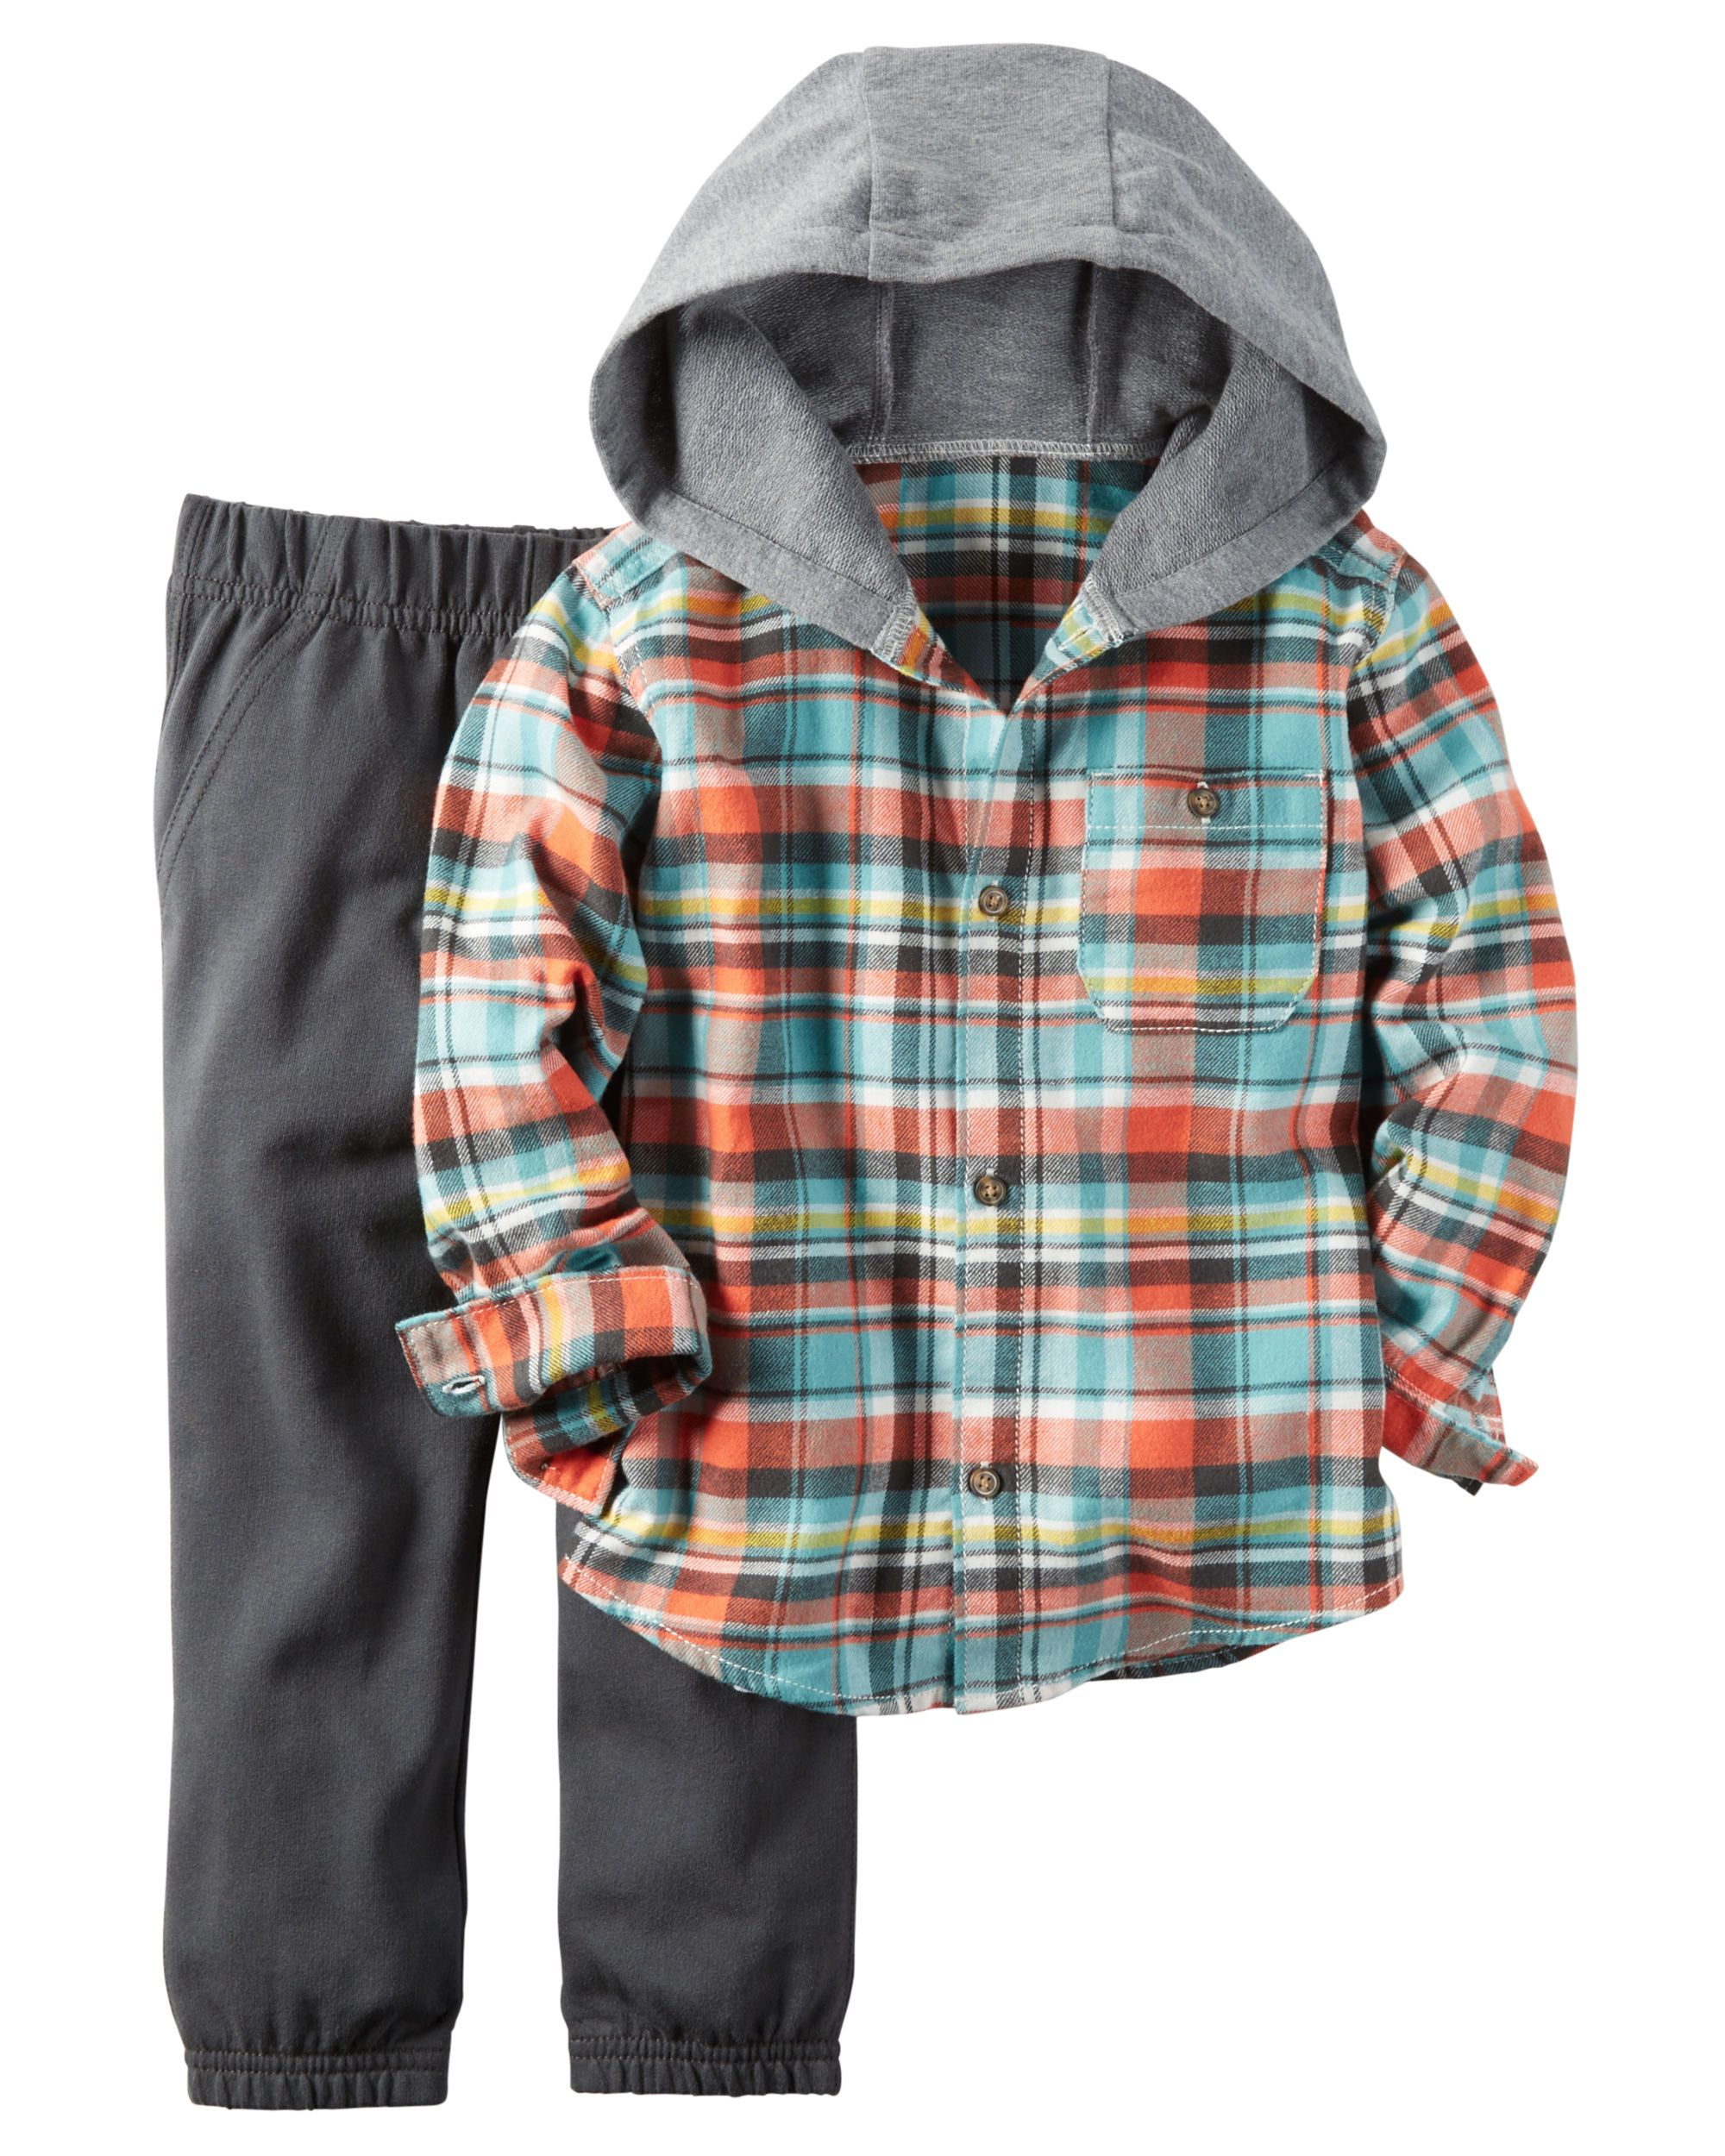 b5b32f06b He's set for playground adventures on brisk fall days in this cozy hooded  button-front and jogger set.